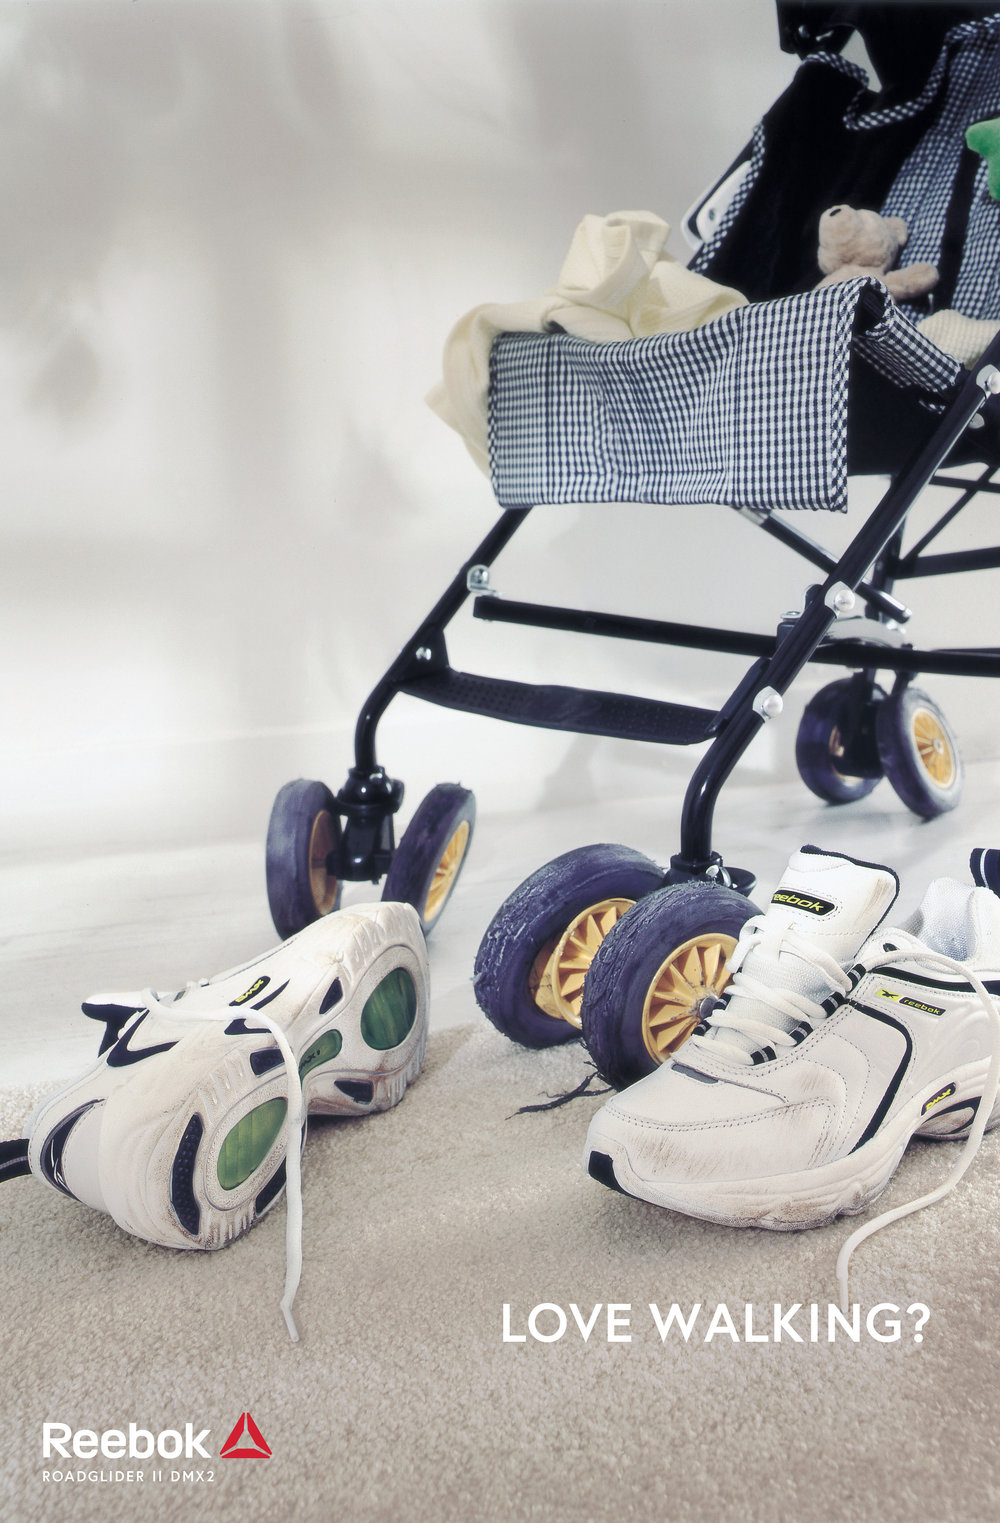 Reebok-baby-carriage-v2018a.jpg